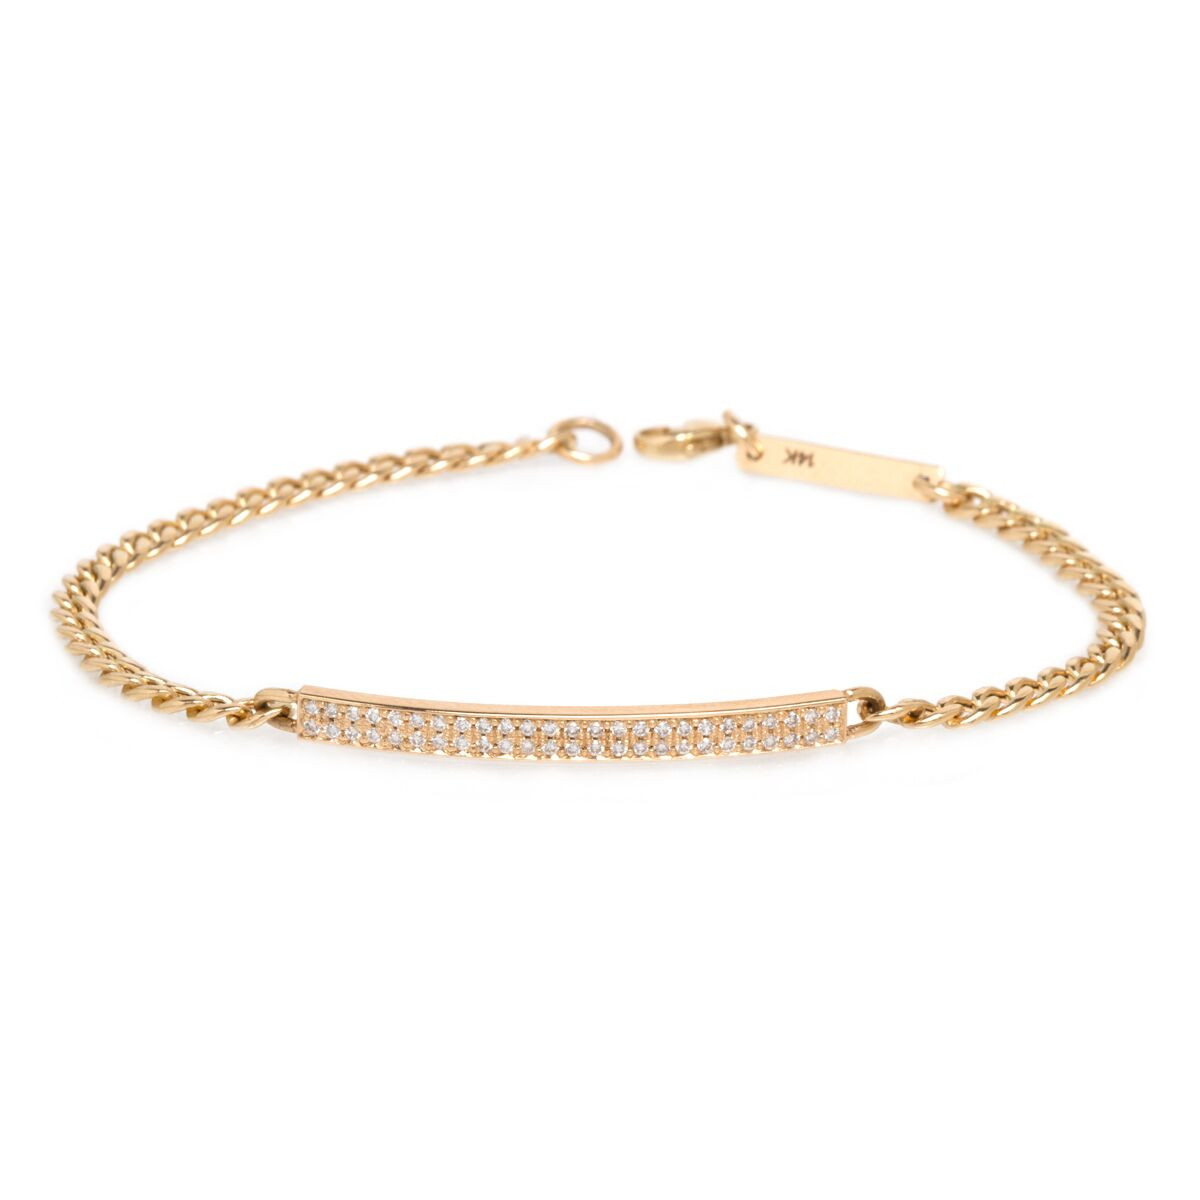 Zoe Chicco ID Station Bracelet in Yellow Gold